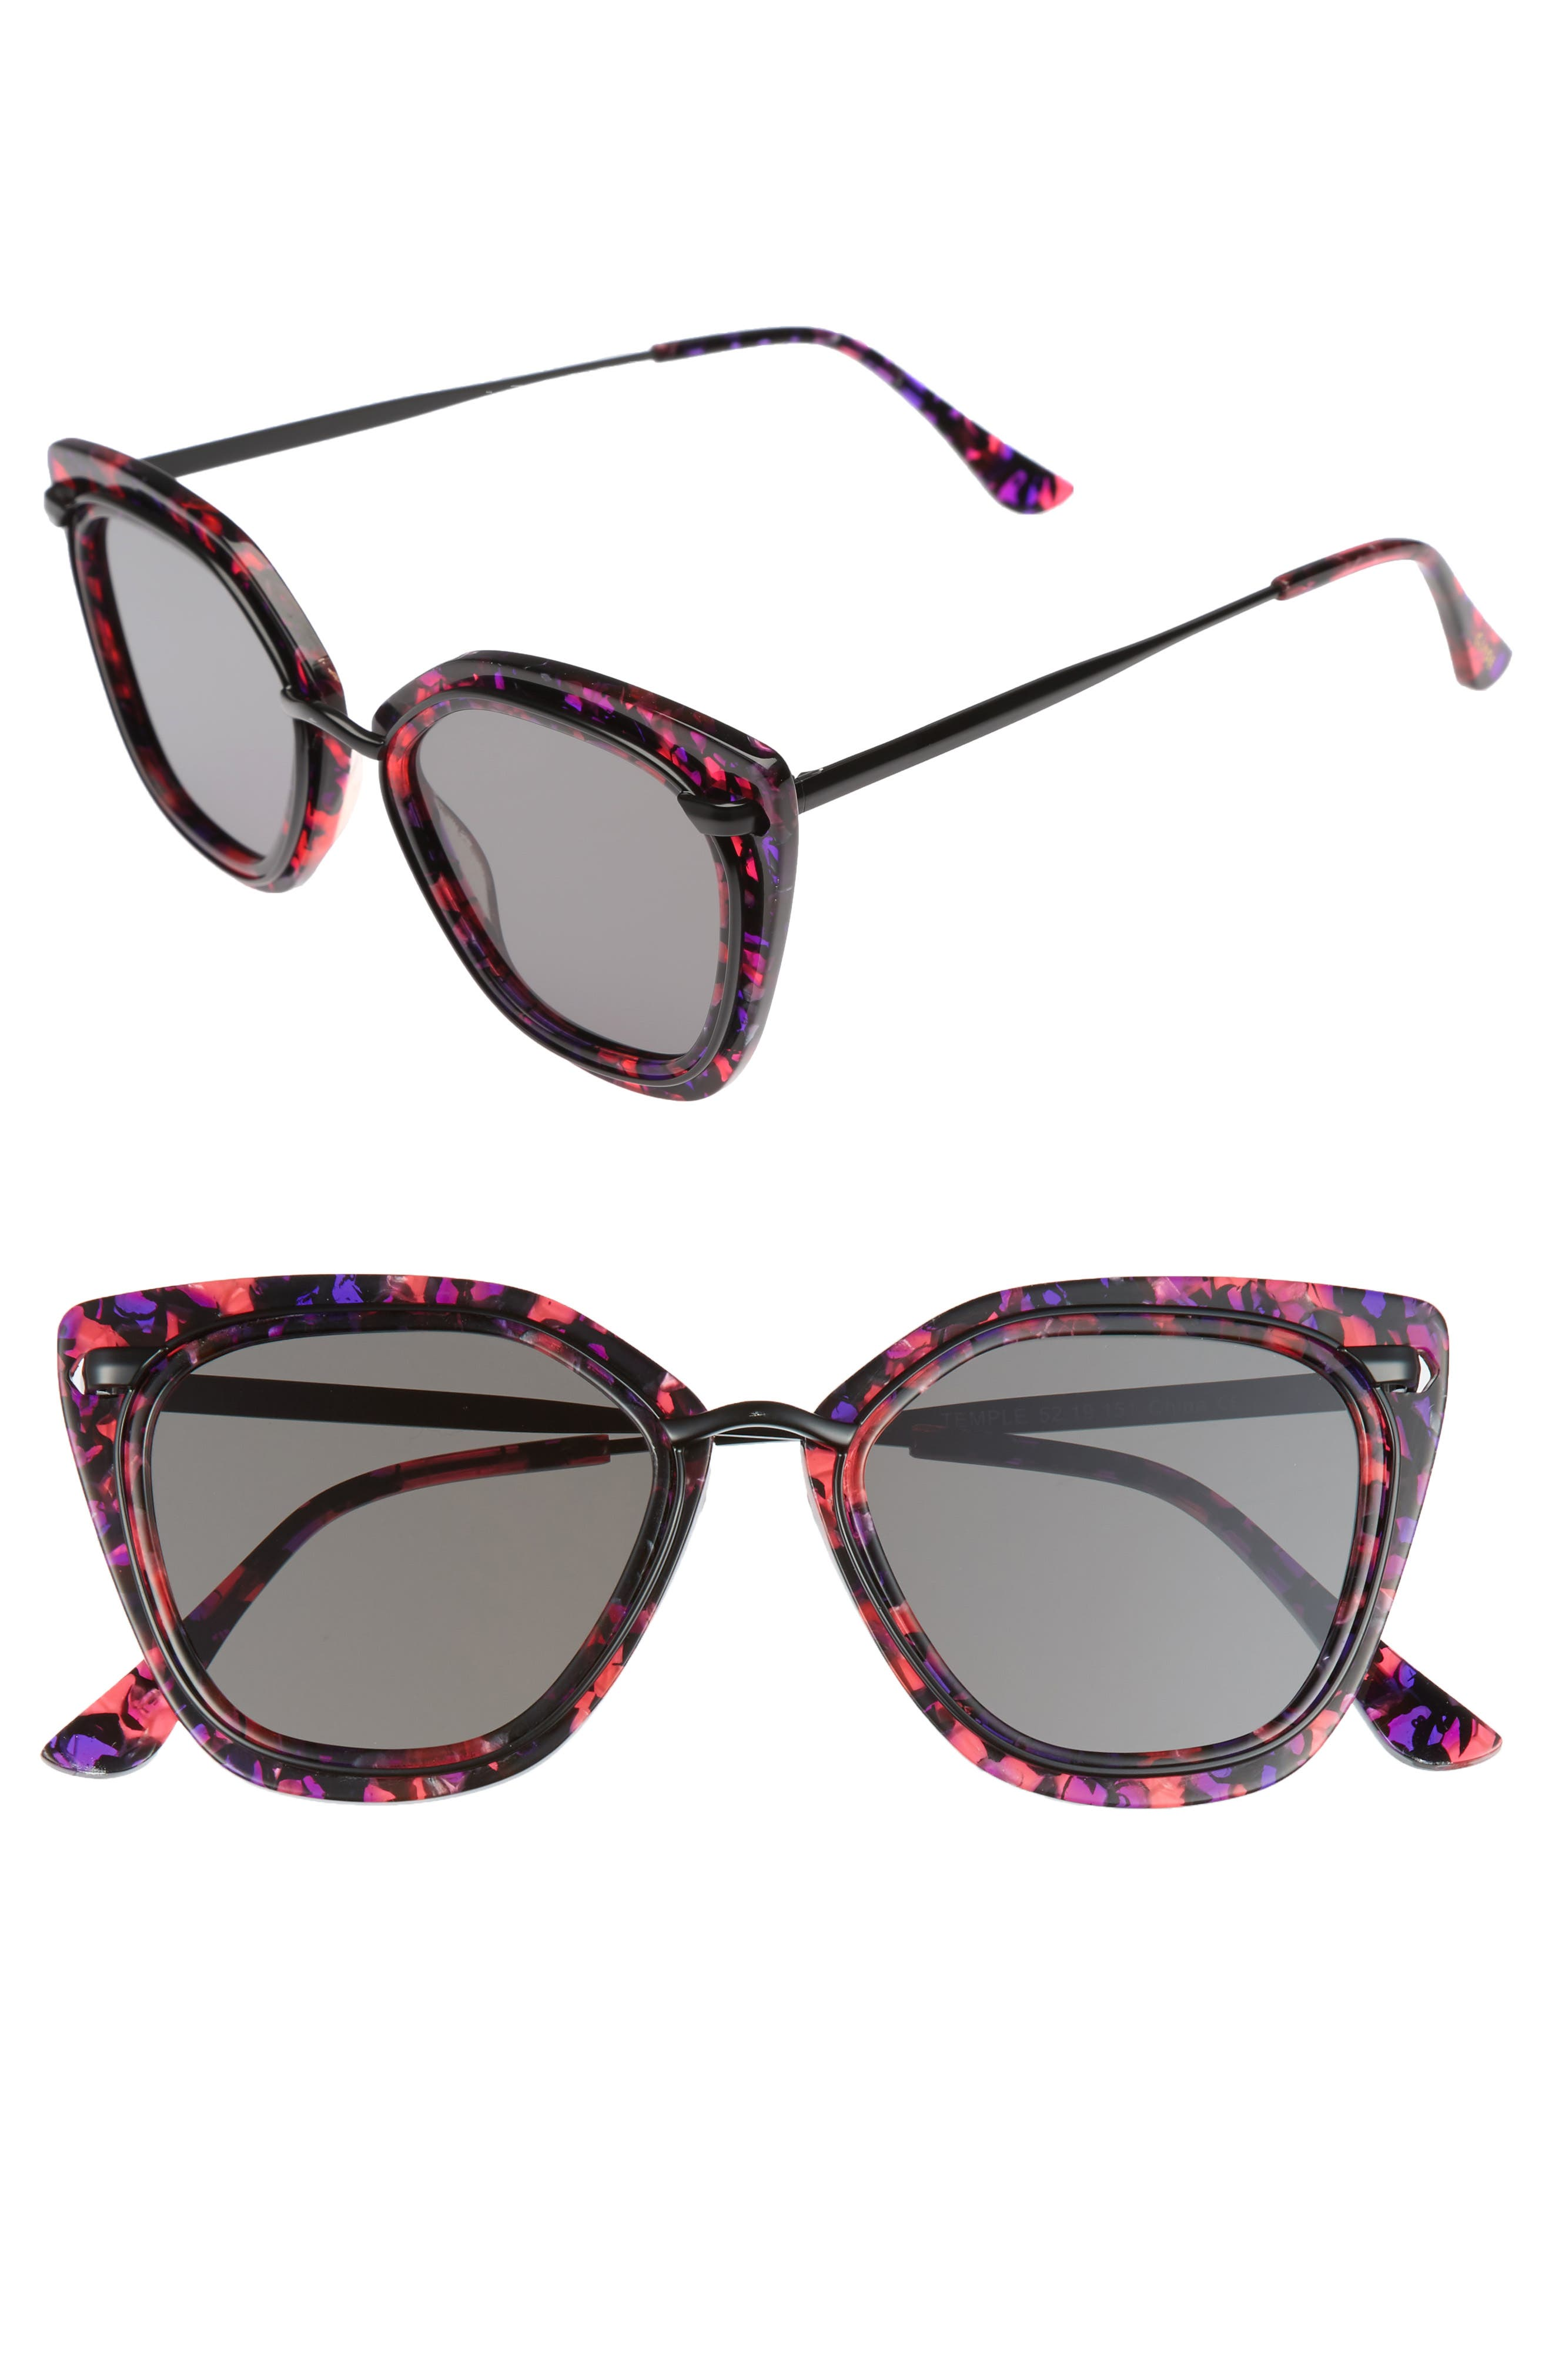 Temple 52mm Sunglasses,                         Main,                         color, Purple Tortoise